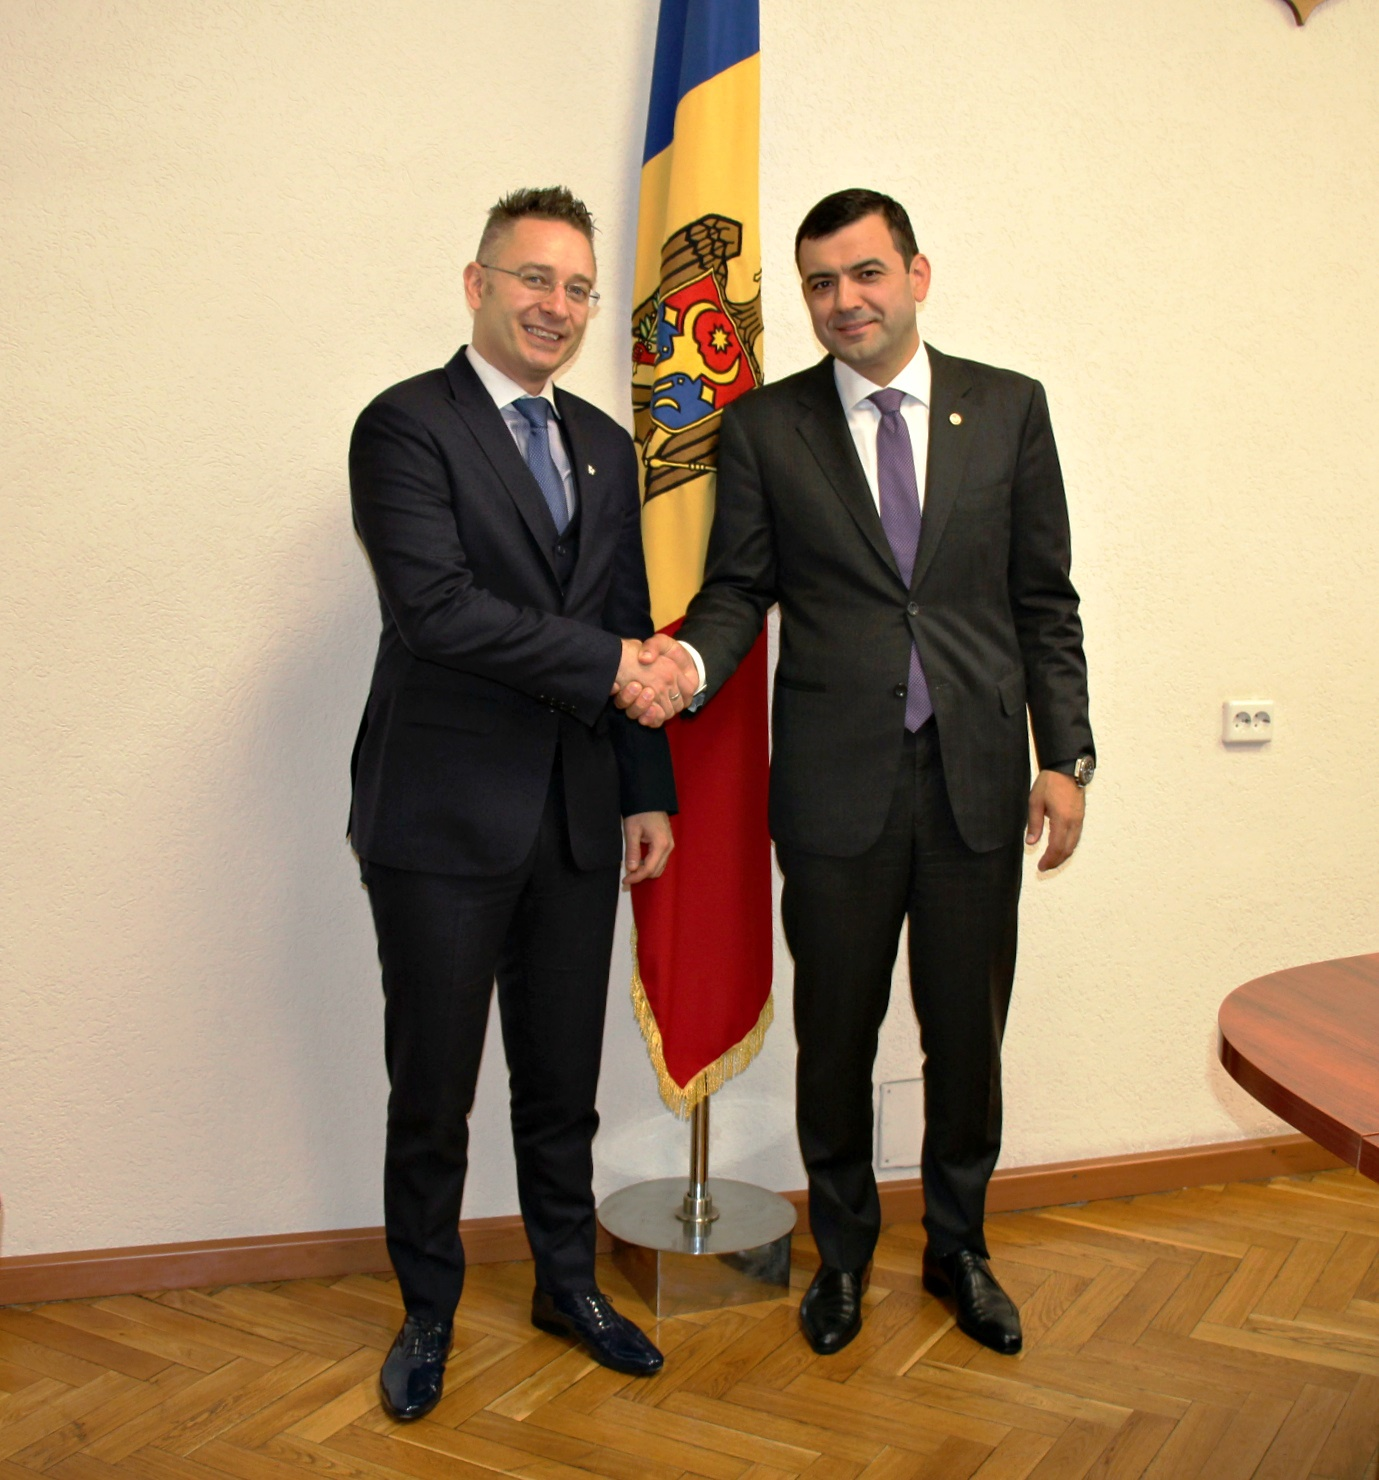 MARCO GANTENBEIN henly and Chiril Gaburici moldovan minister of economy mei.gov.md